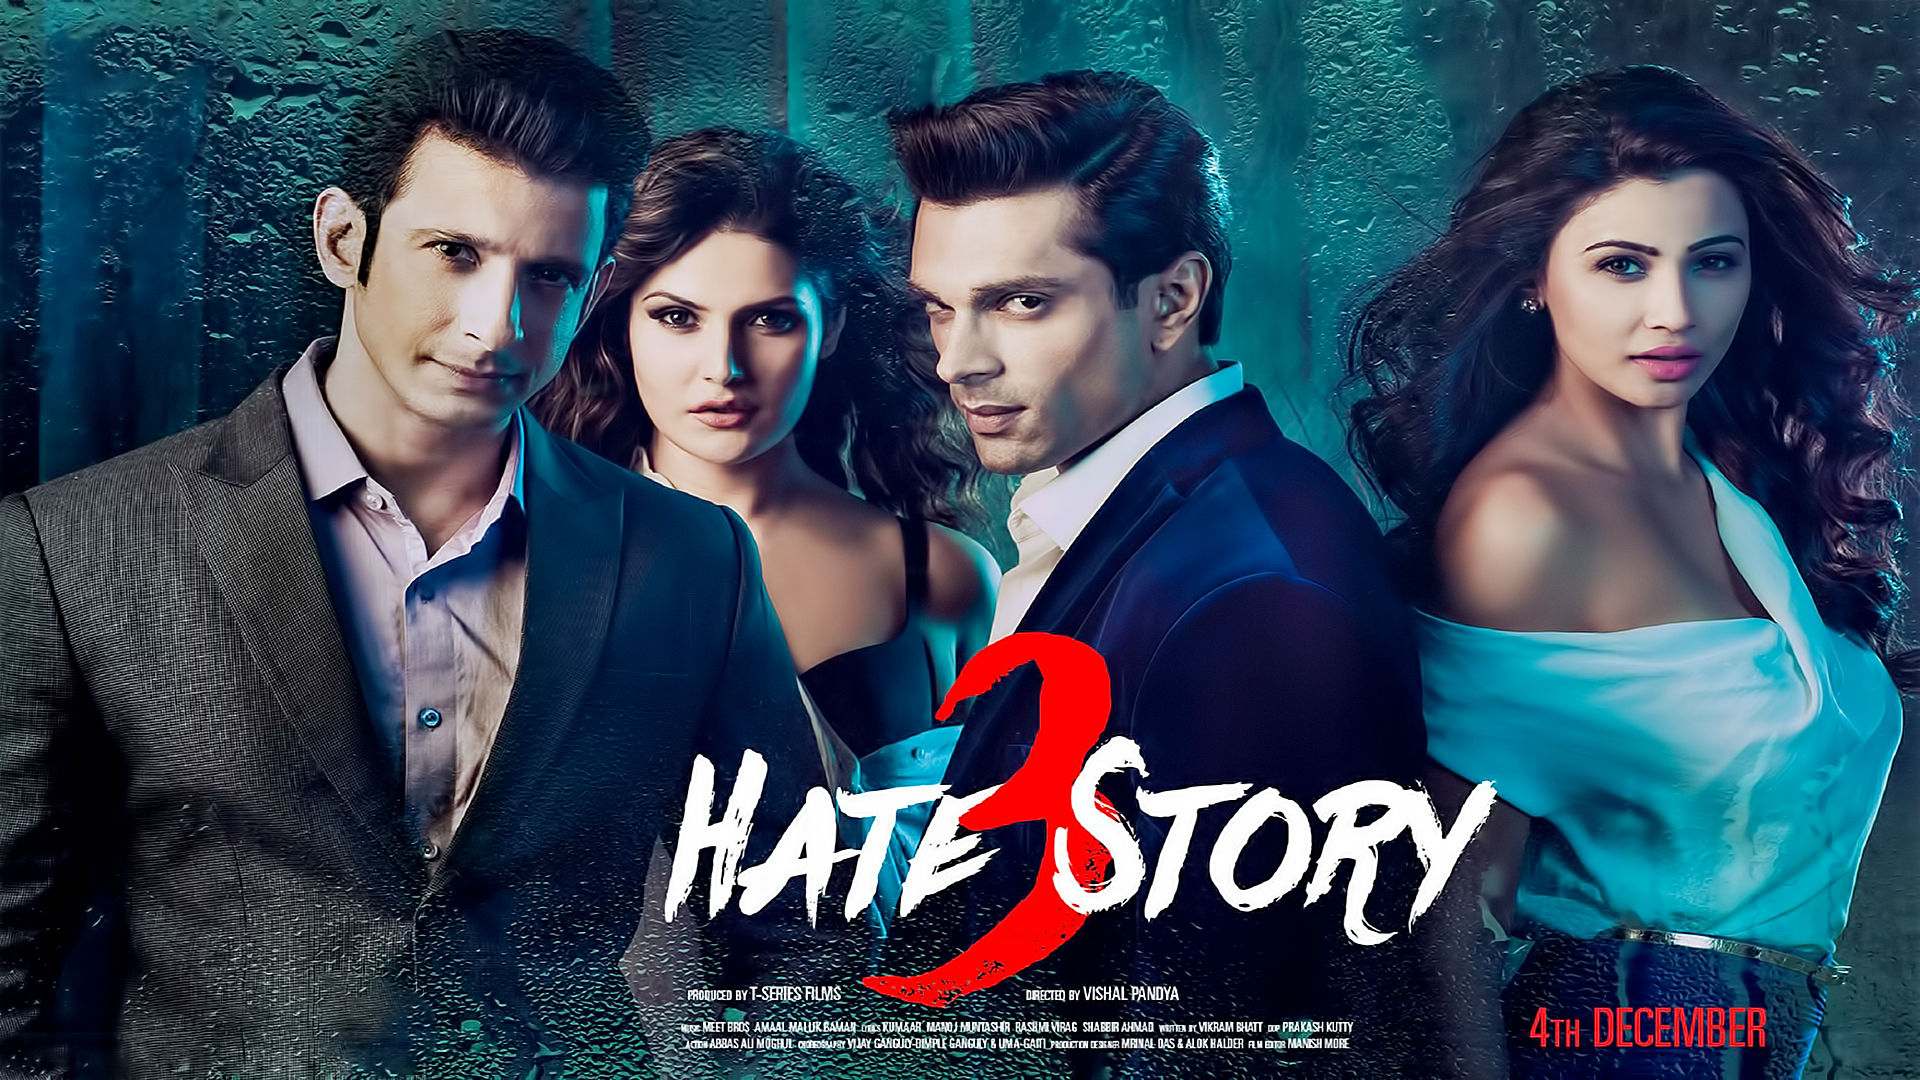 Hate Story 3 Movie Dialogues Poster Sharman Joshi, Zarine Khan, Karan Singh Grover, Daisy Shah